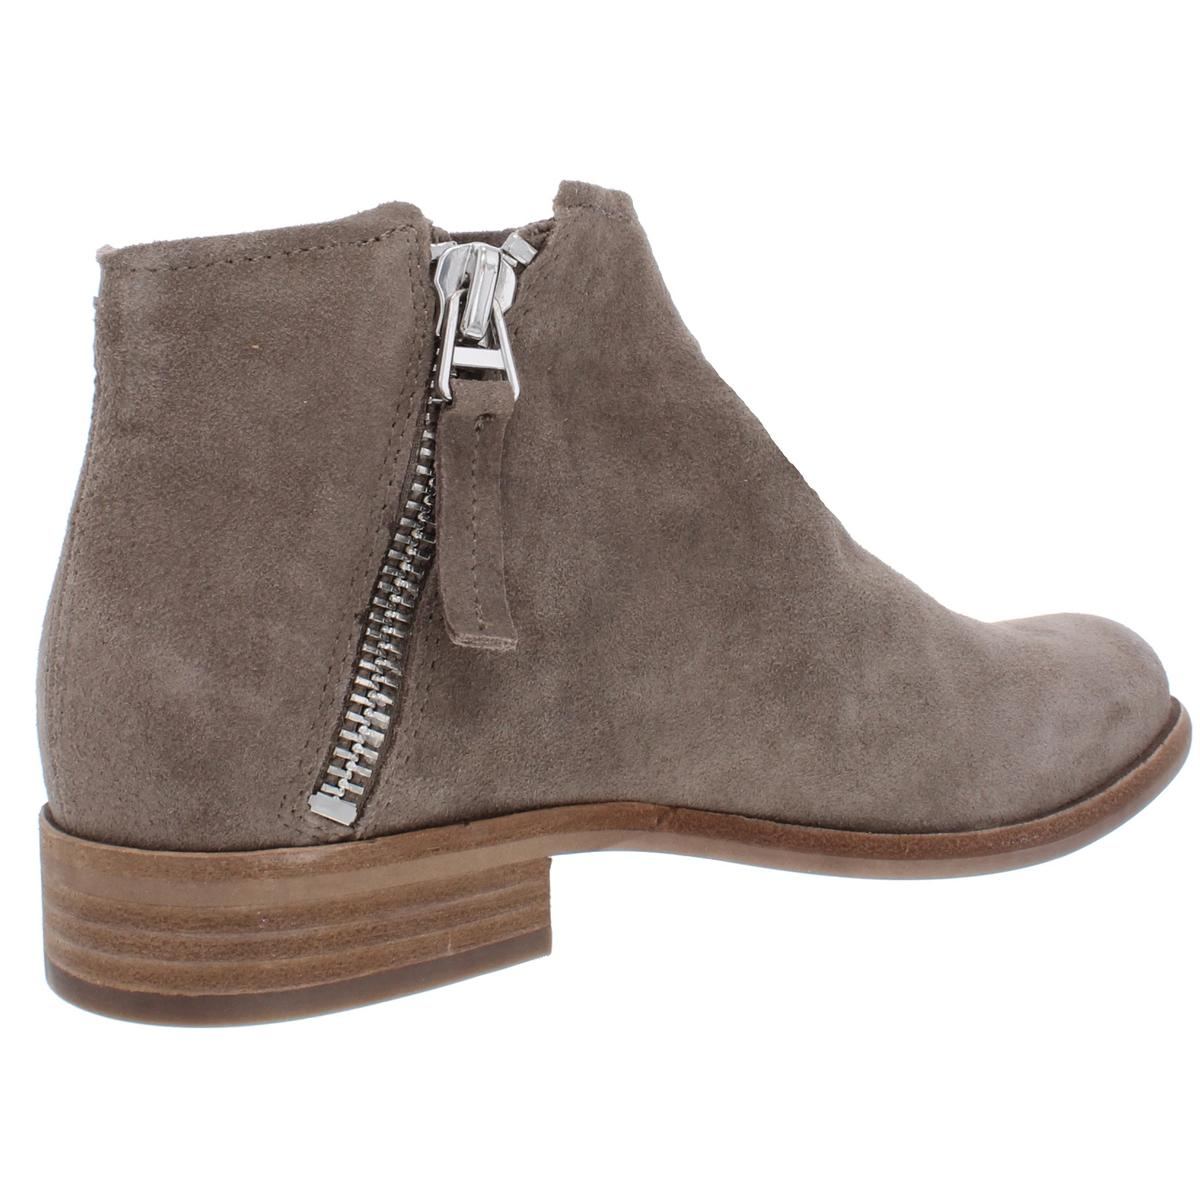 Dolce Vita Womens Vesa Leather Ankle Stacked Booties Shoes BHFO 2653